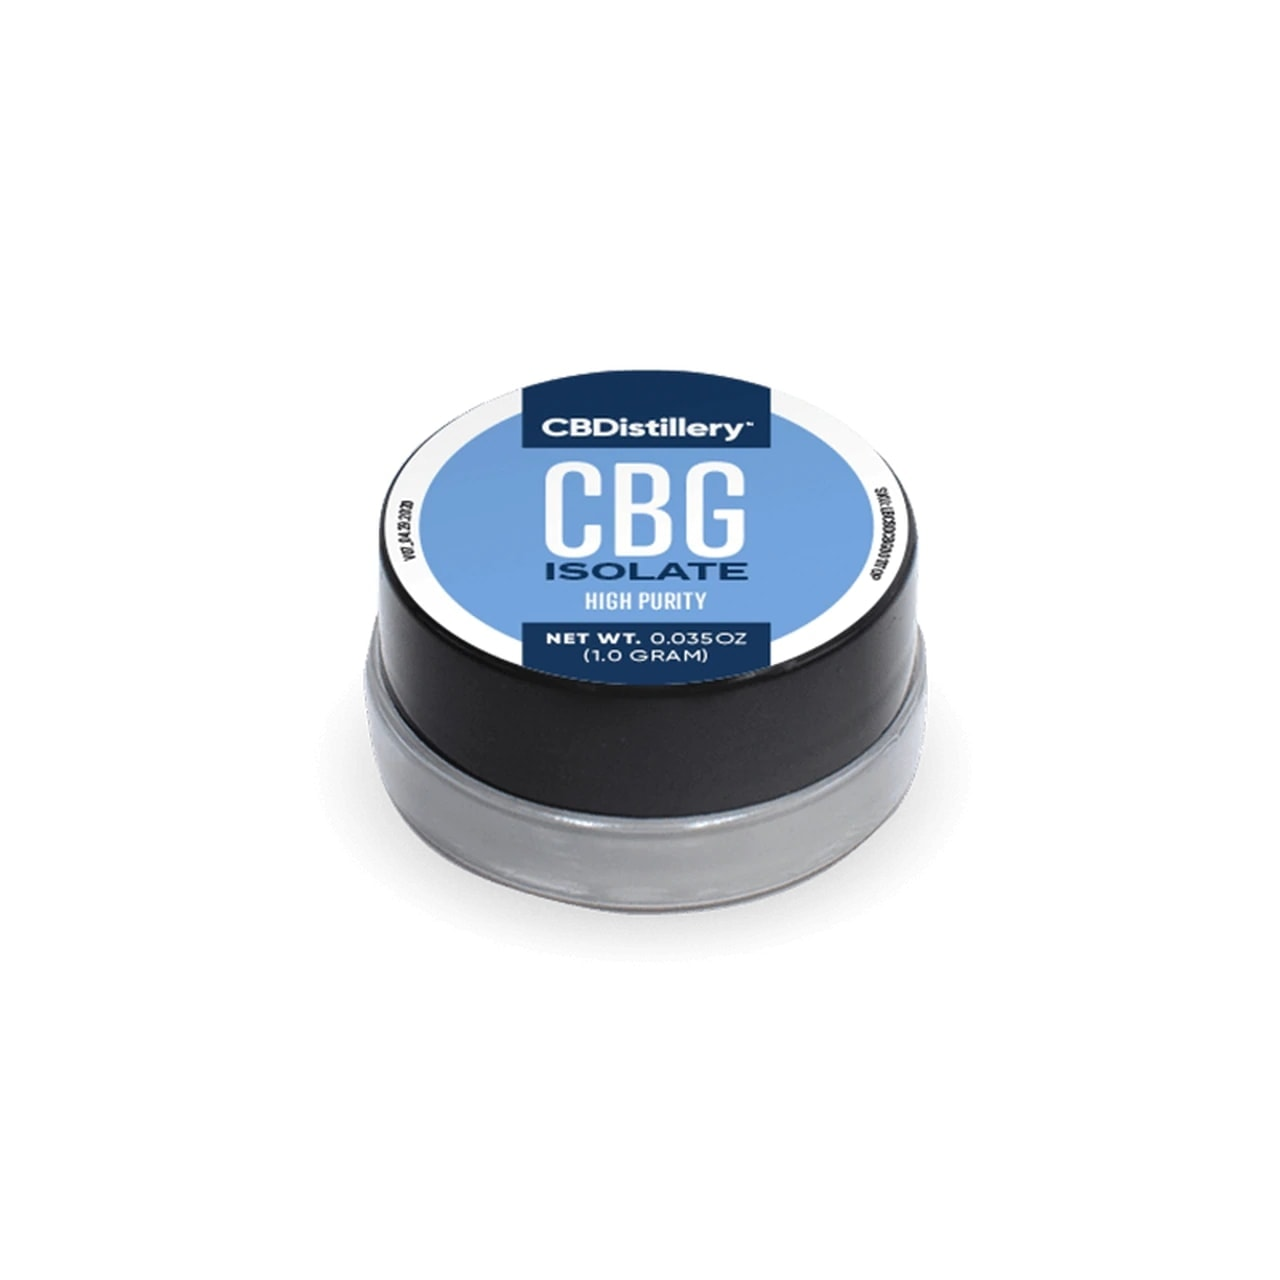 CBDistillery, CBG Isolate High Purity Powder, 1g, 970mg of CBG2